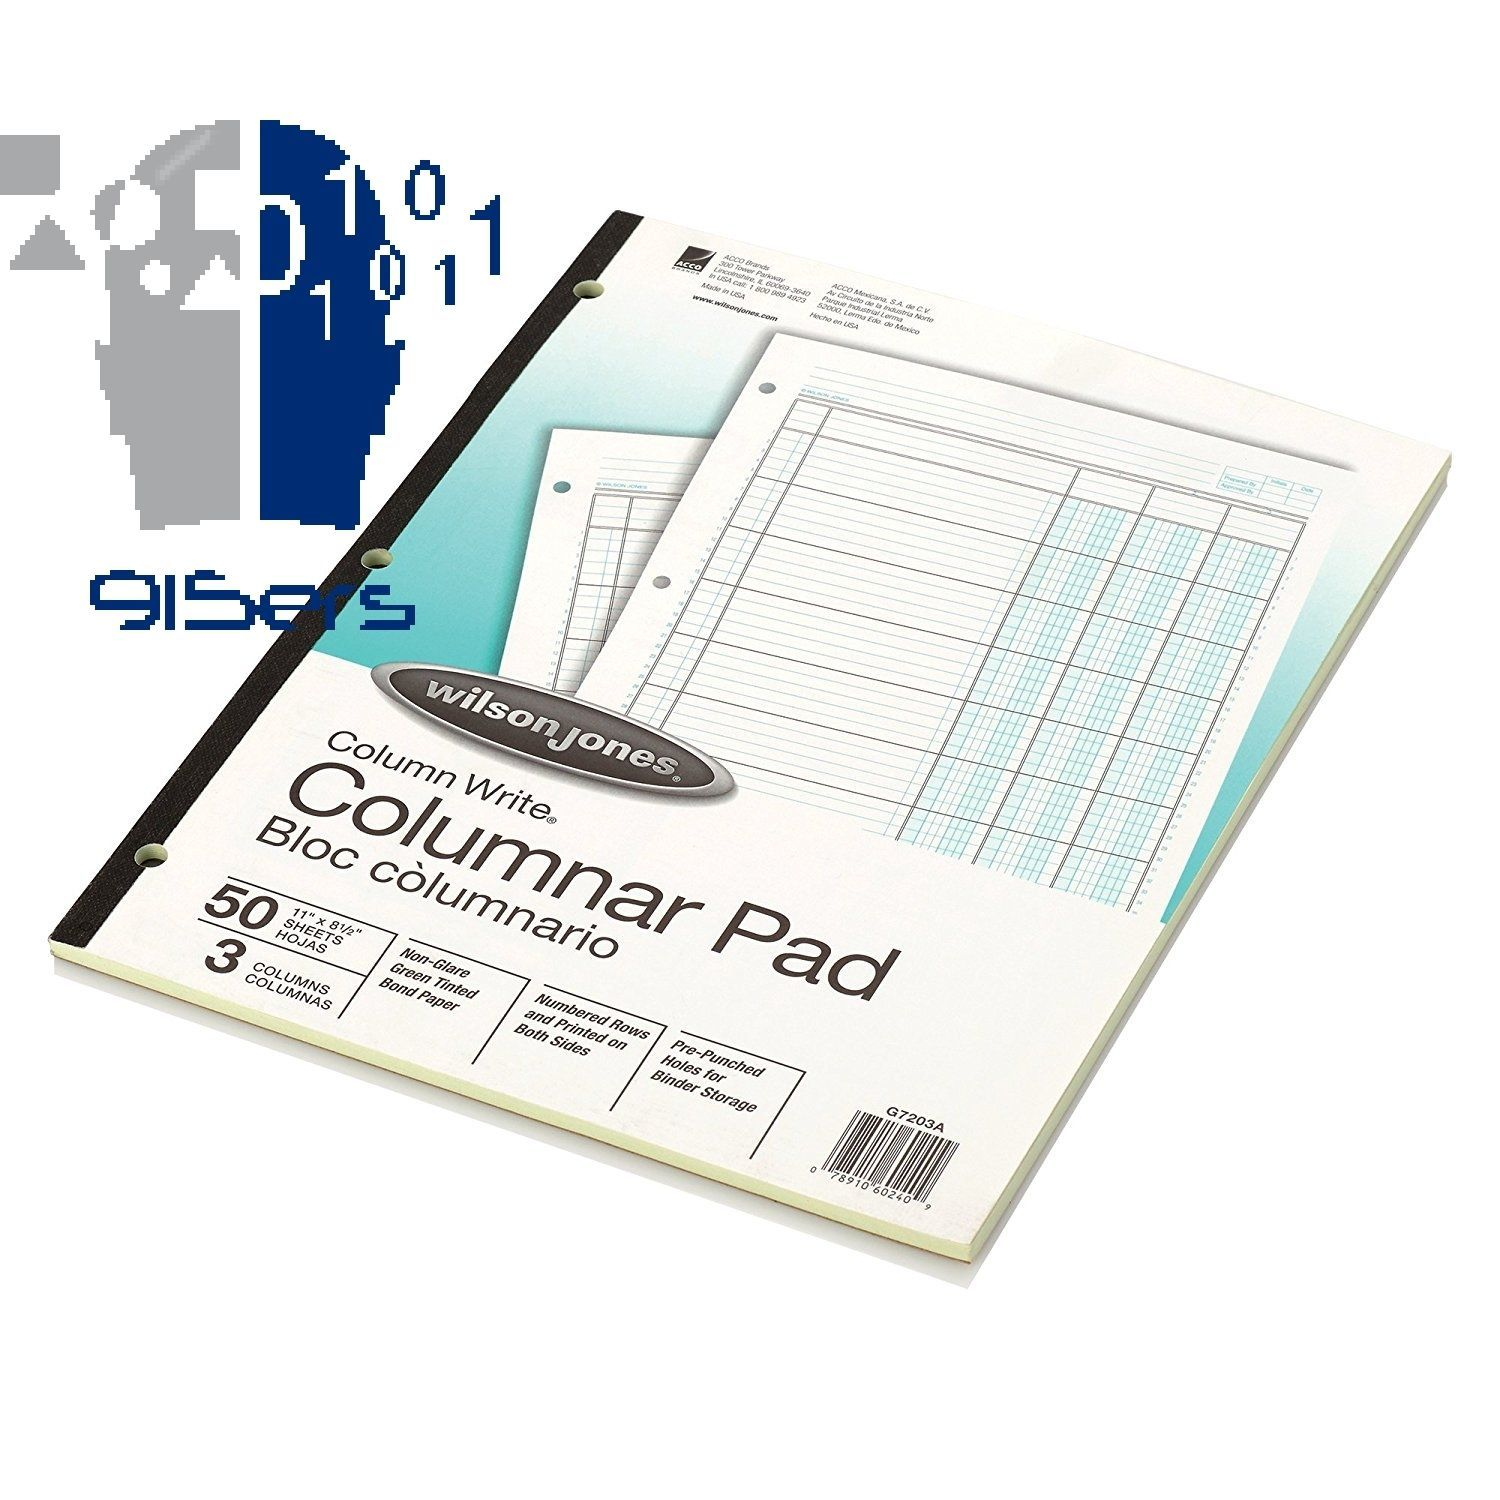 Wilson Jones ColumnWrite Columnar Pad 11 x 8.5 Inch Size Ruled Both Sides Ali...